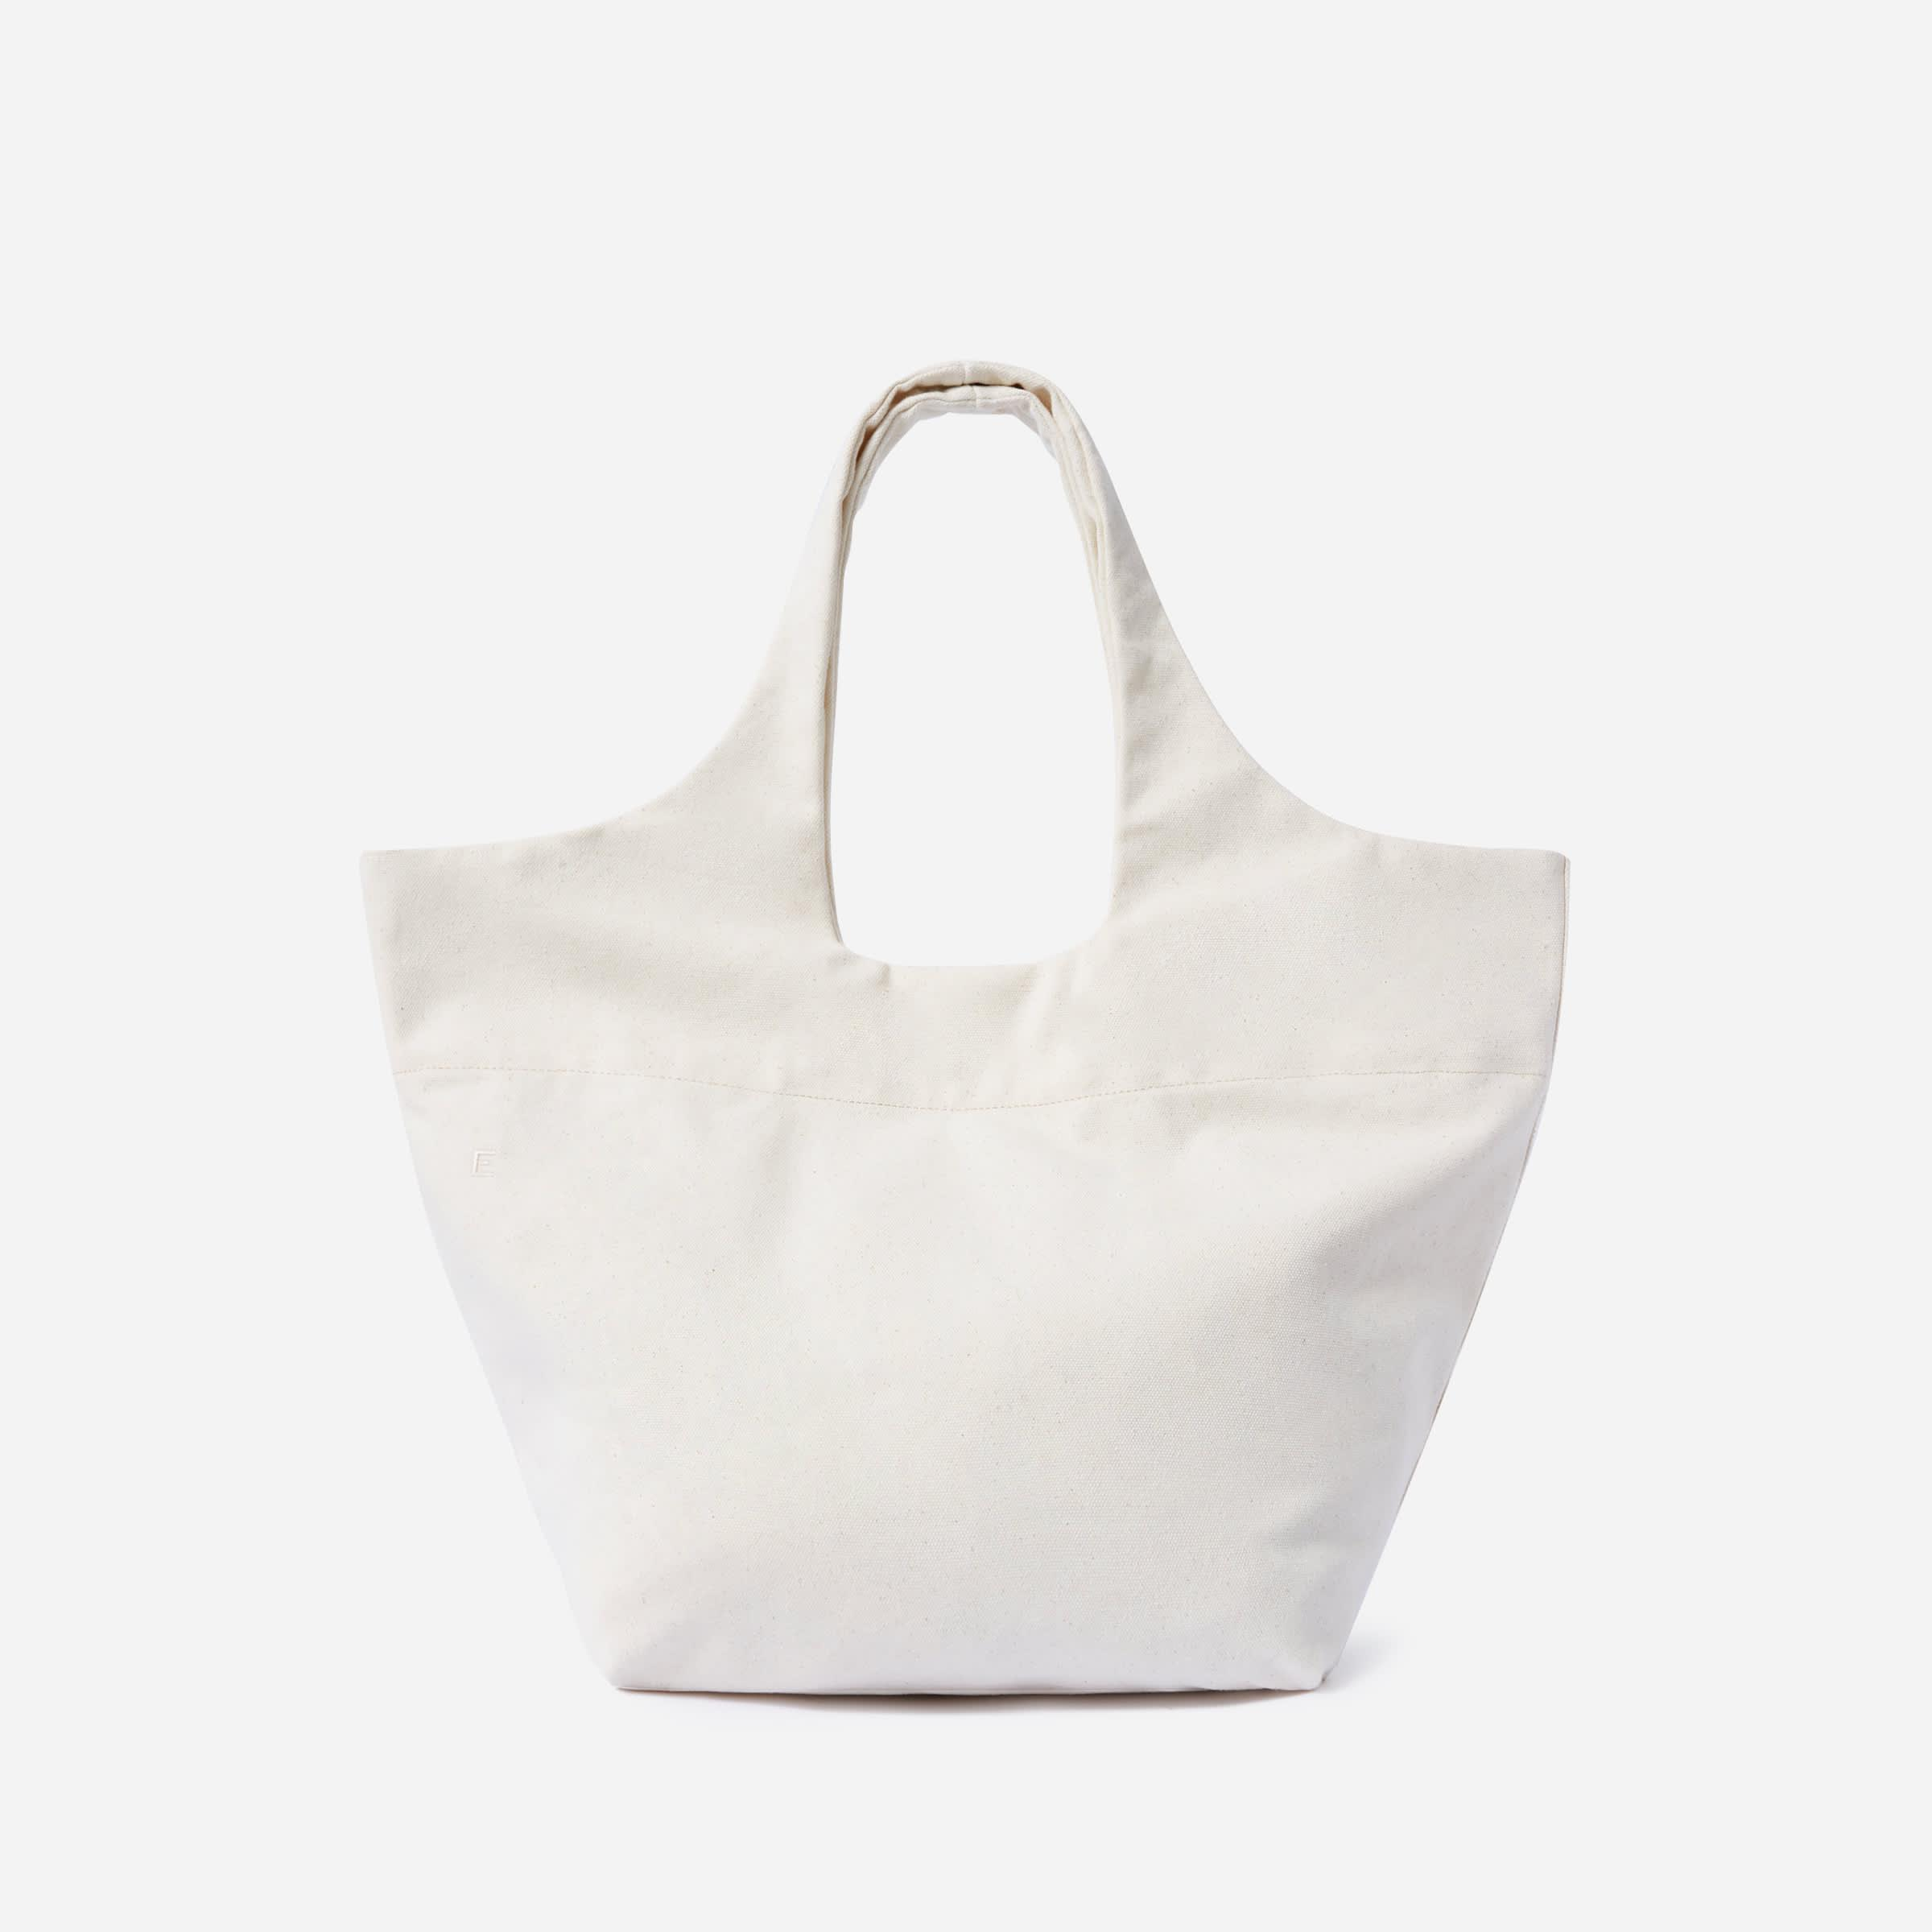 The Canvas Basket Tote